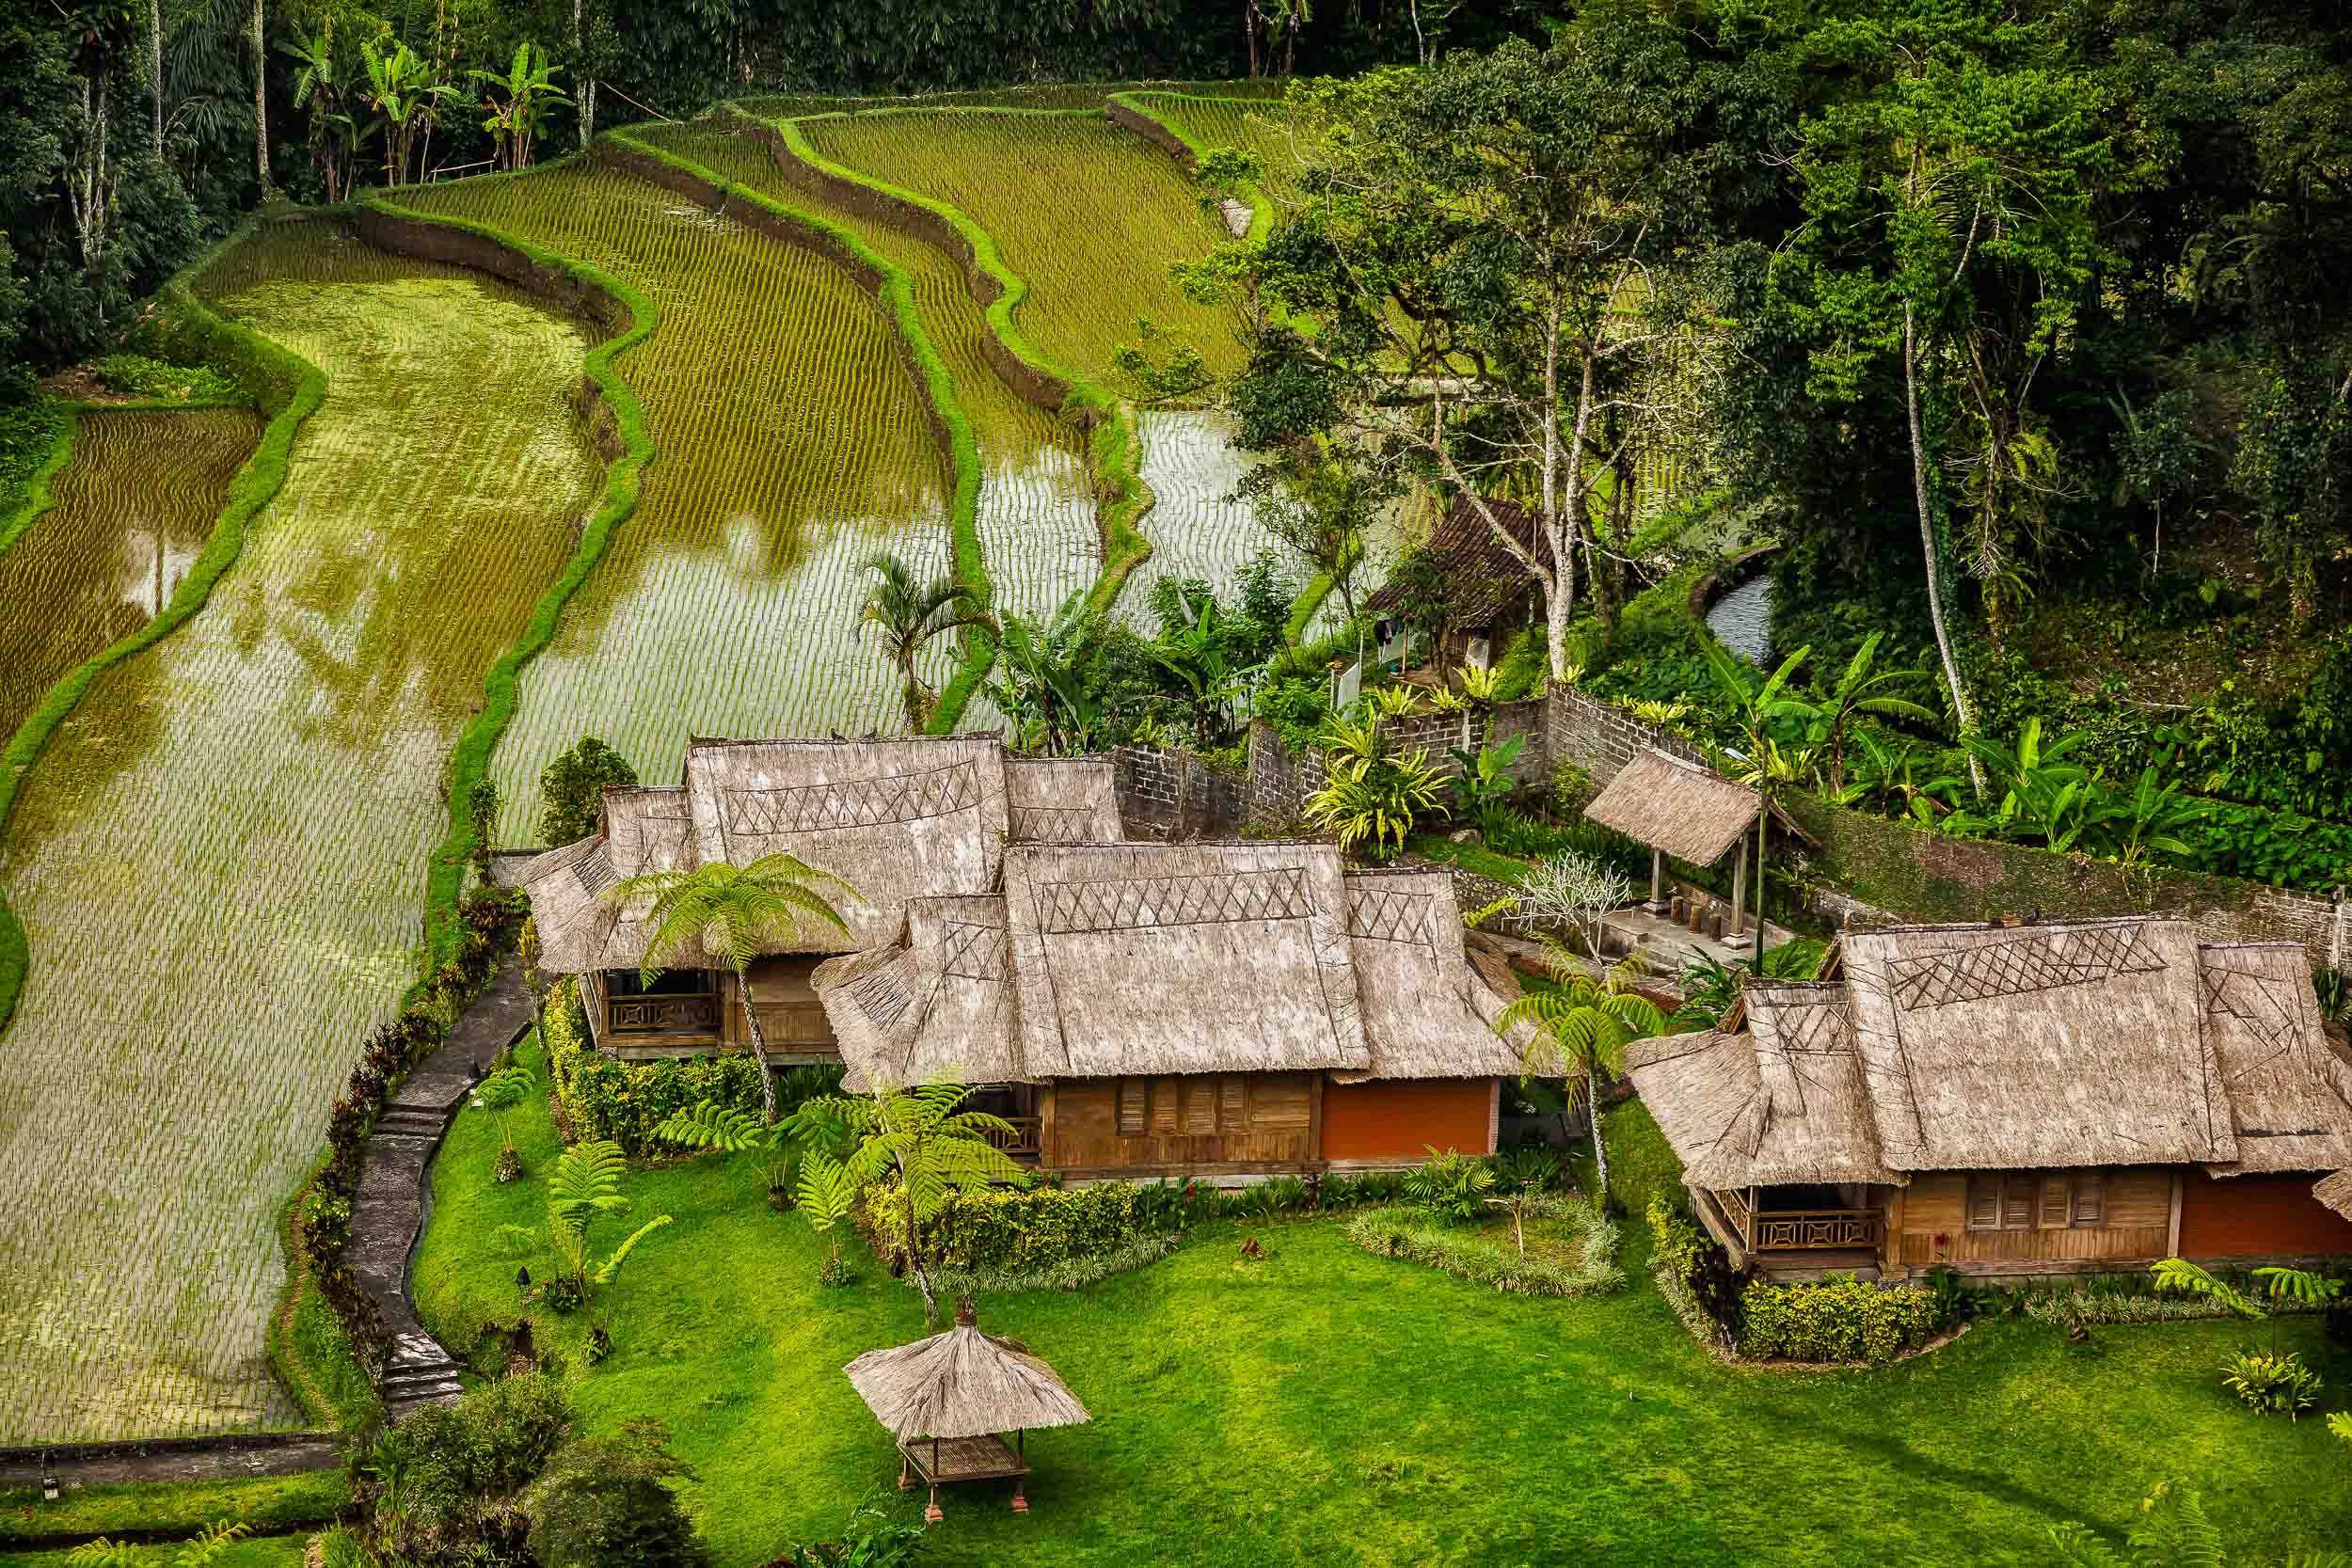 This sublime scene depicts  idyllic accommodations , alongside  terraced rice paddies , in rural  Bali, Indonesia .